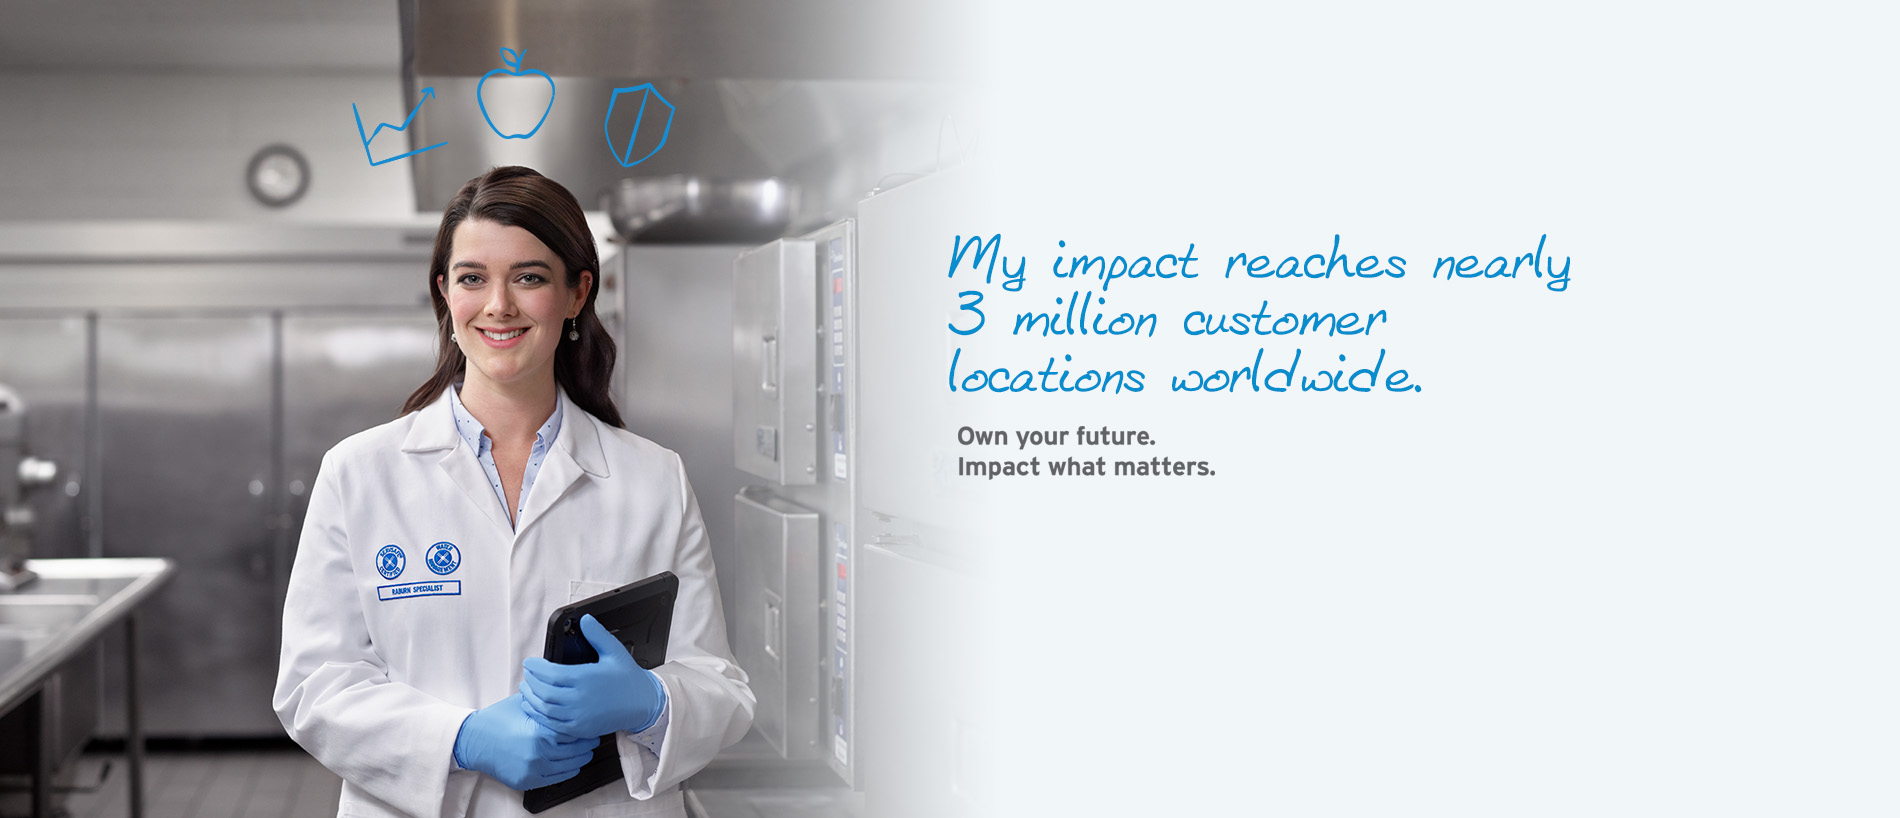 My impact reaches nearly 3 million customer locations worldwide. Own your future. Impact what matters.